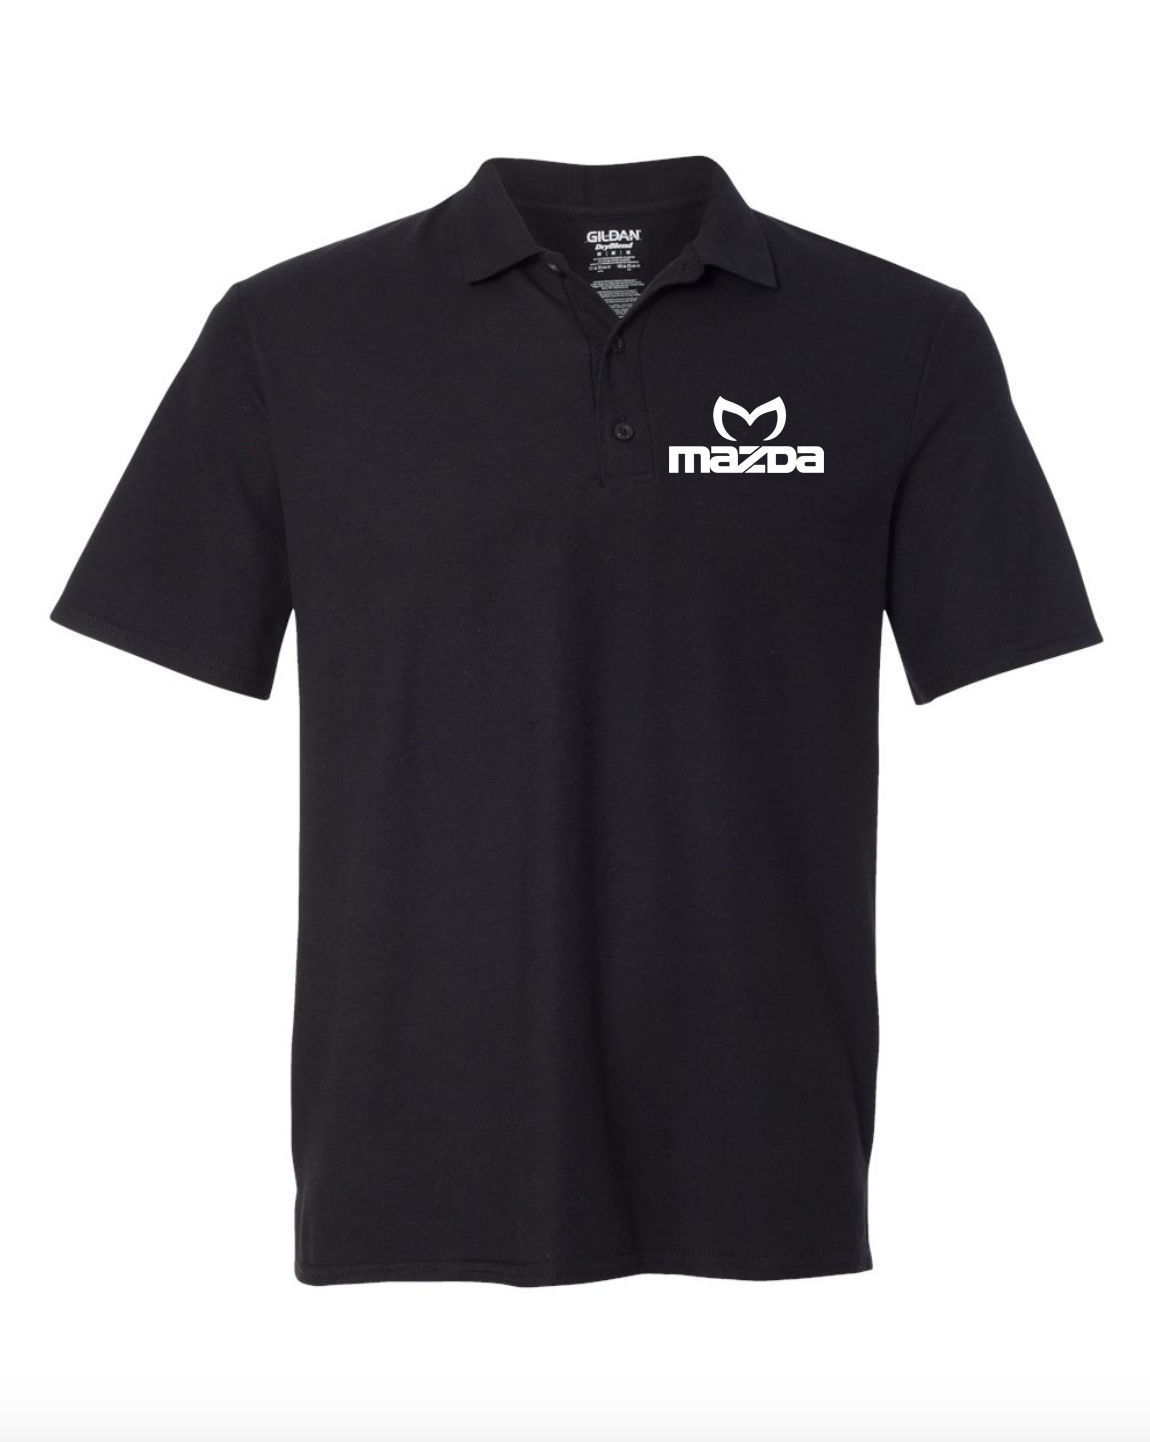 Mazda Motor Black POLO T-Shirt